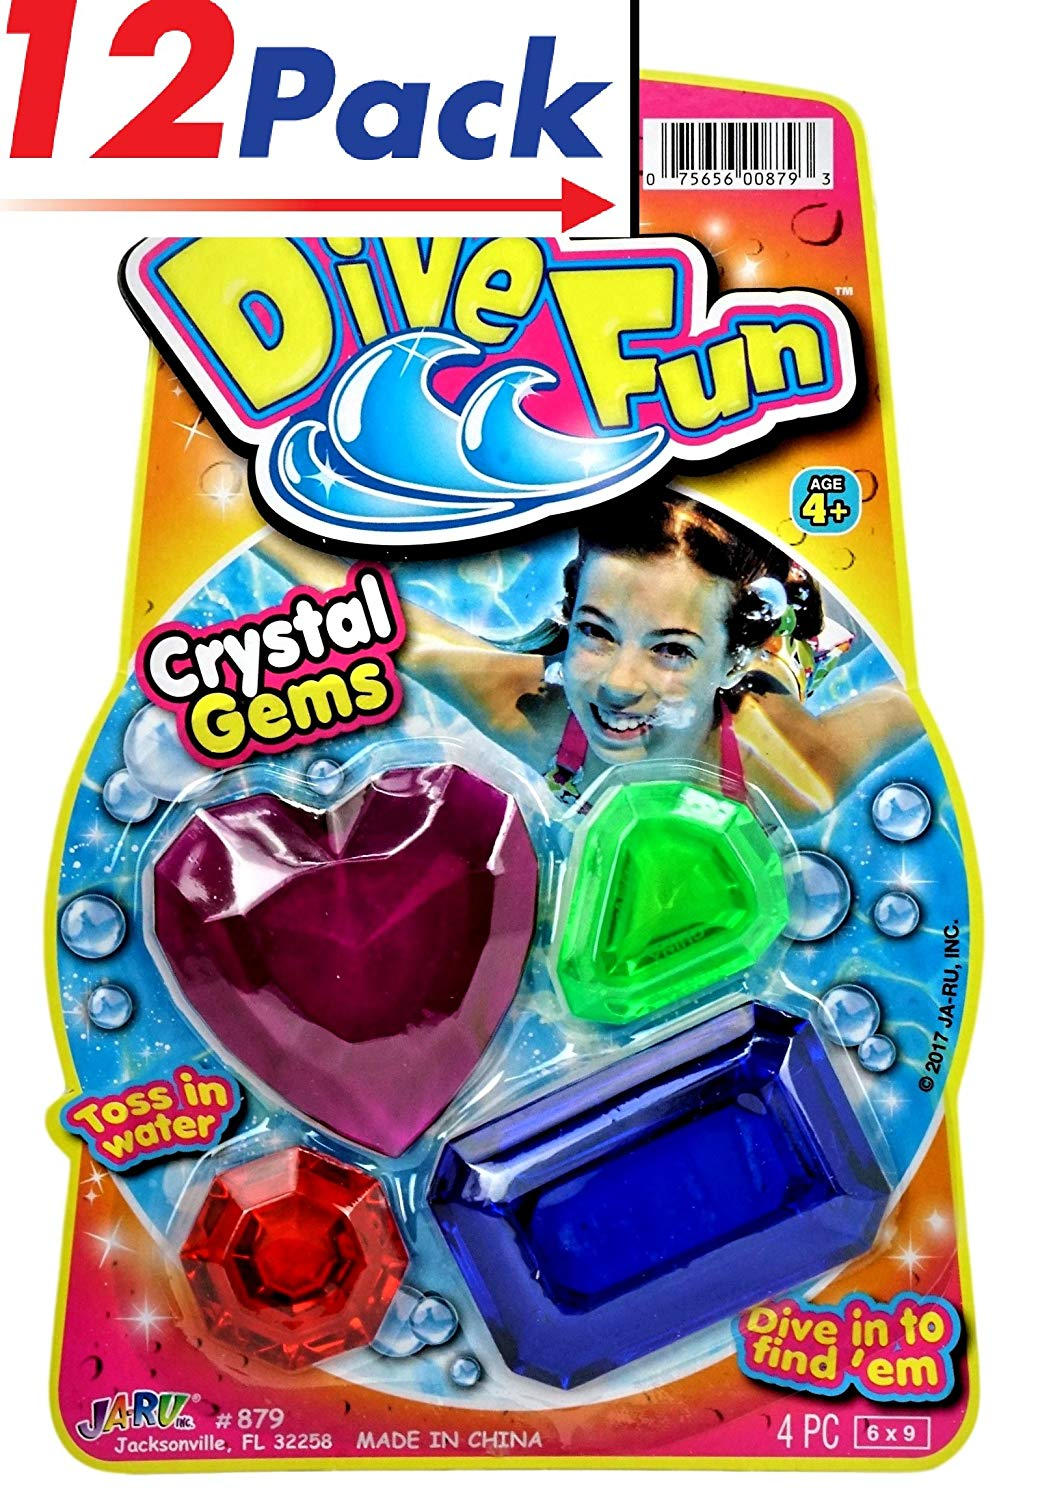 Diving Gems by JA-RU | Swimming Pool Crystal Treasure Chest Dive Toys. Pack of 12 | Item #879